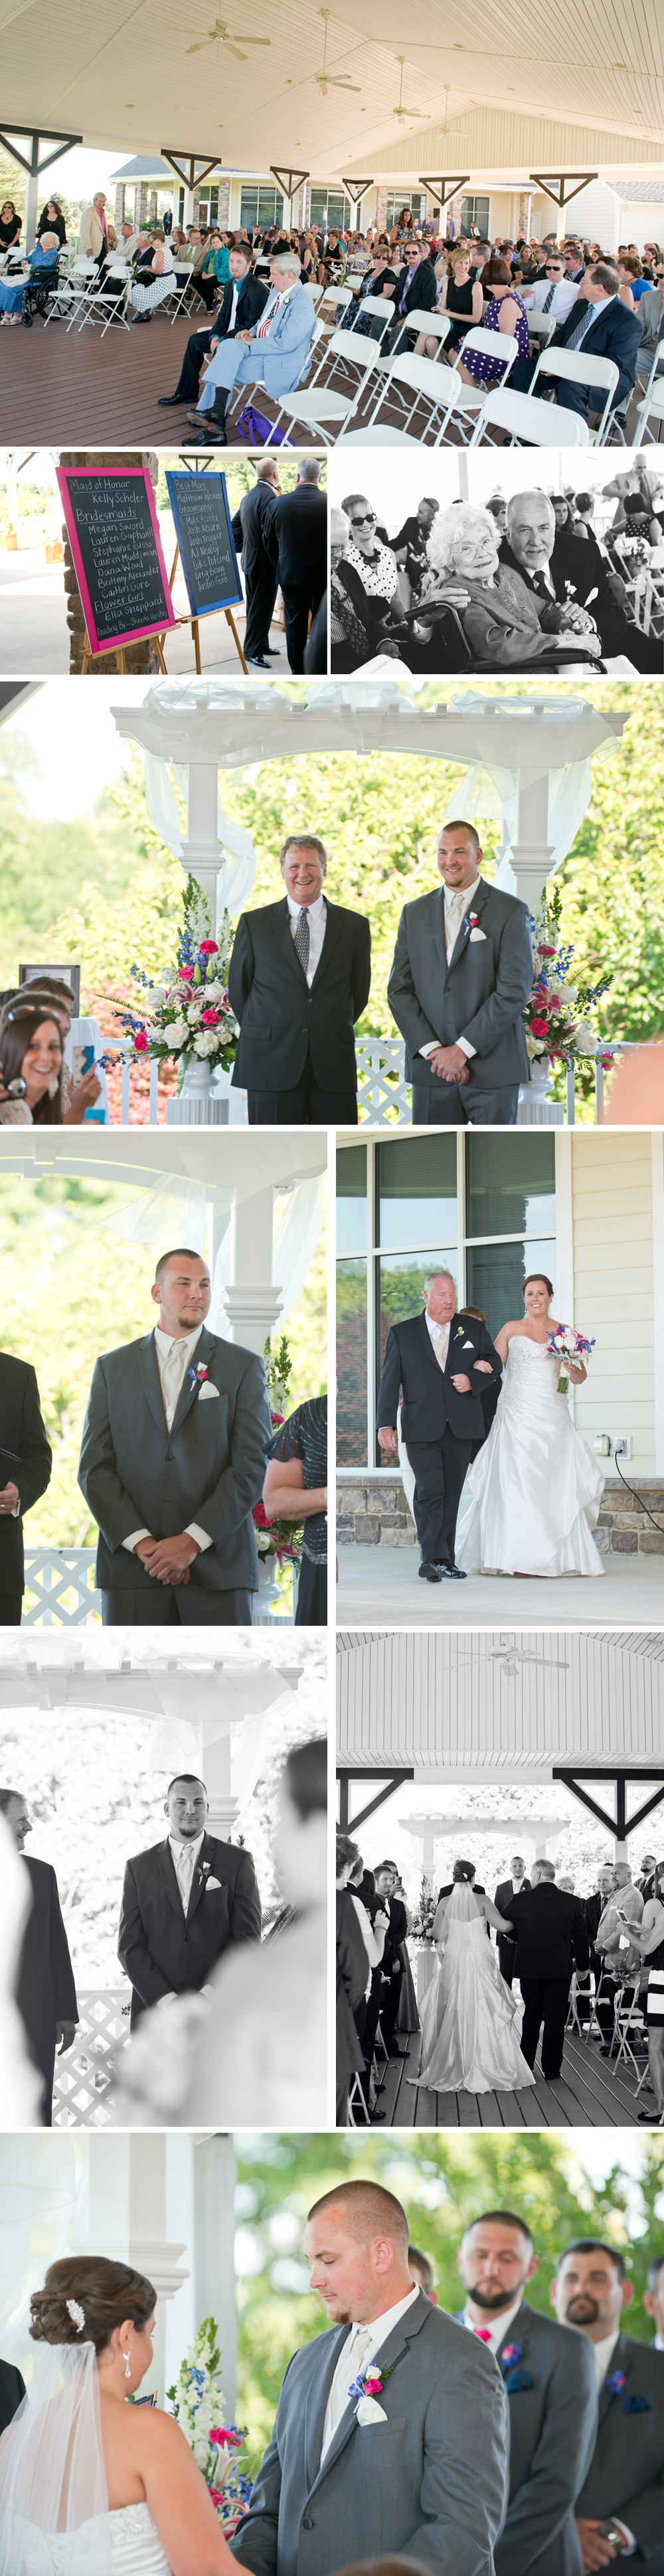 Piney_Branch_Wedding-06